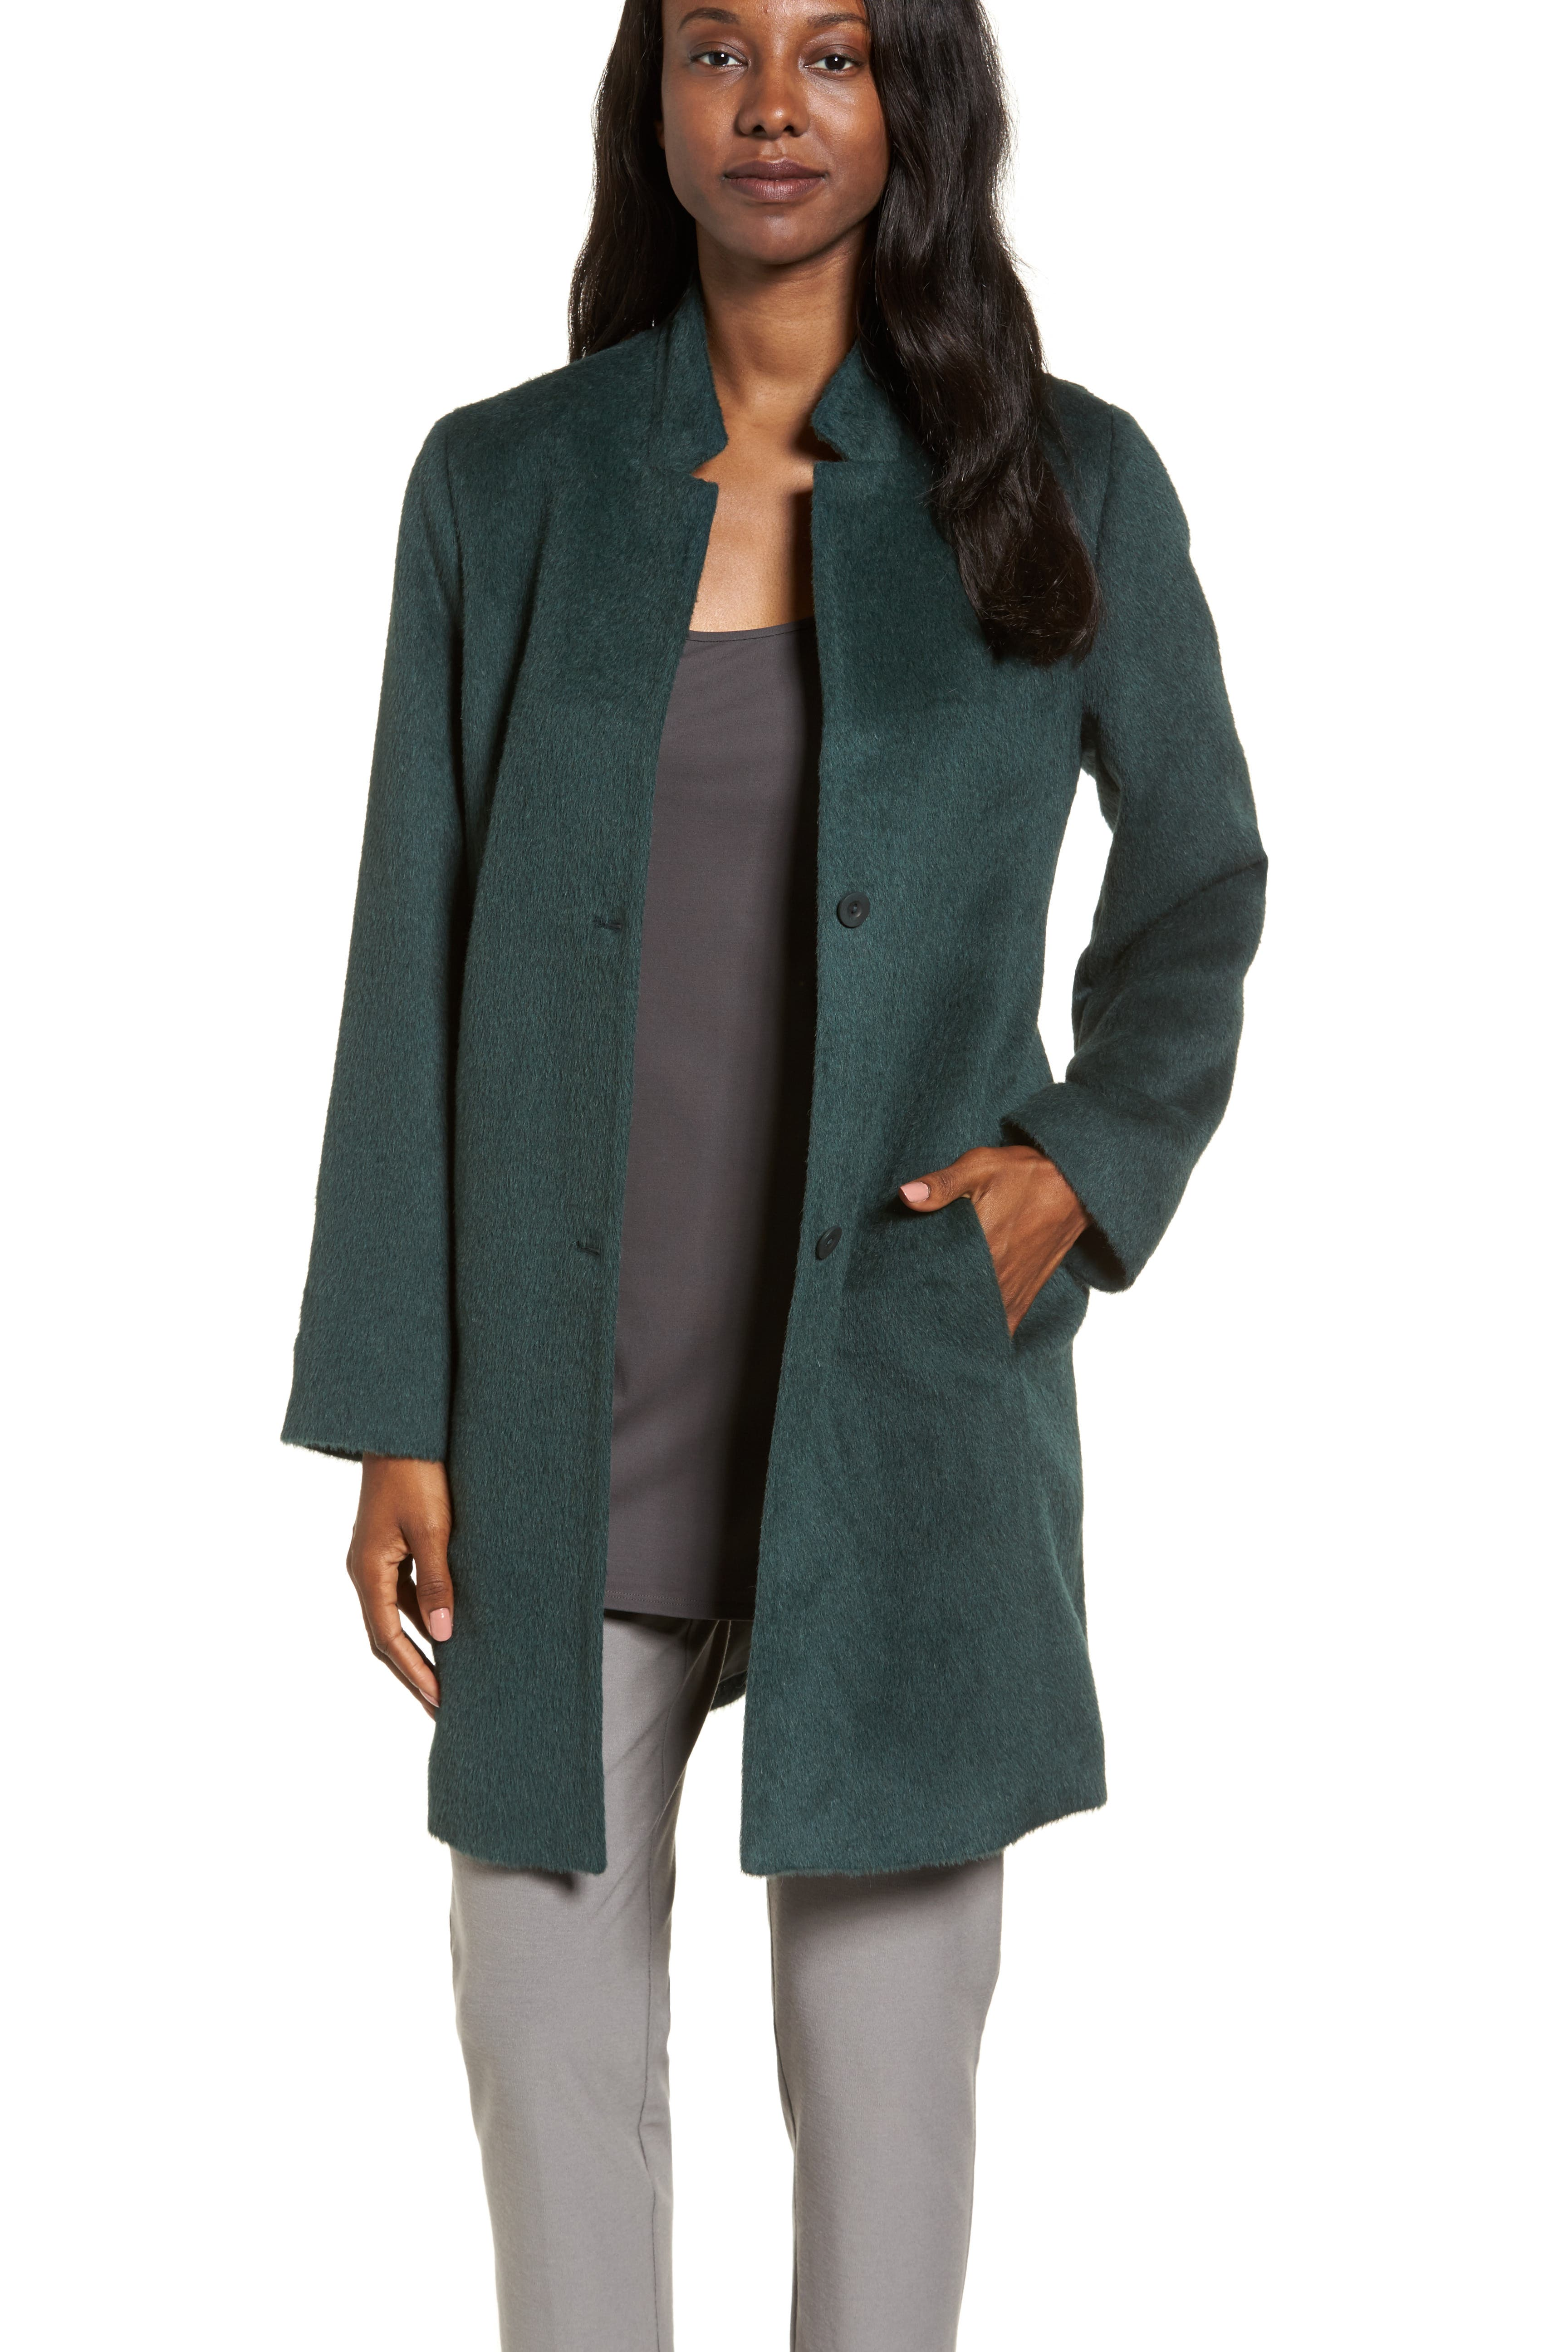 Eileen Fisher Alpaca Blend Coat